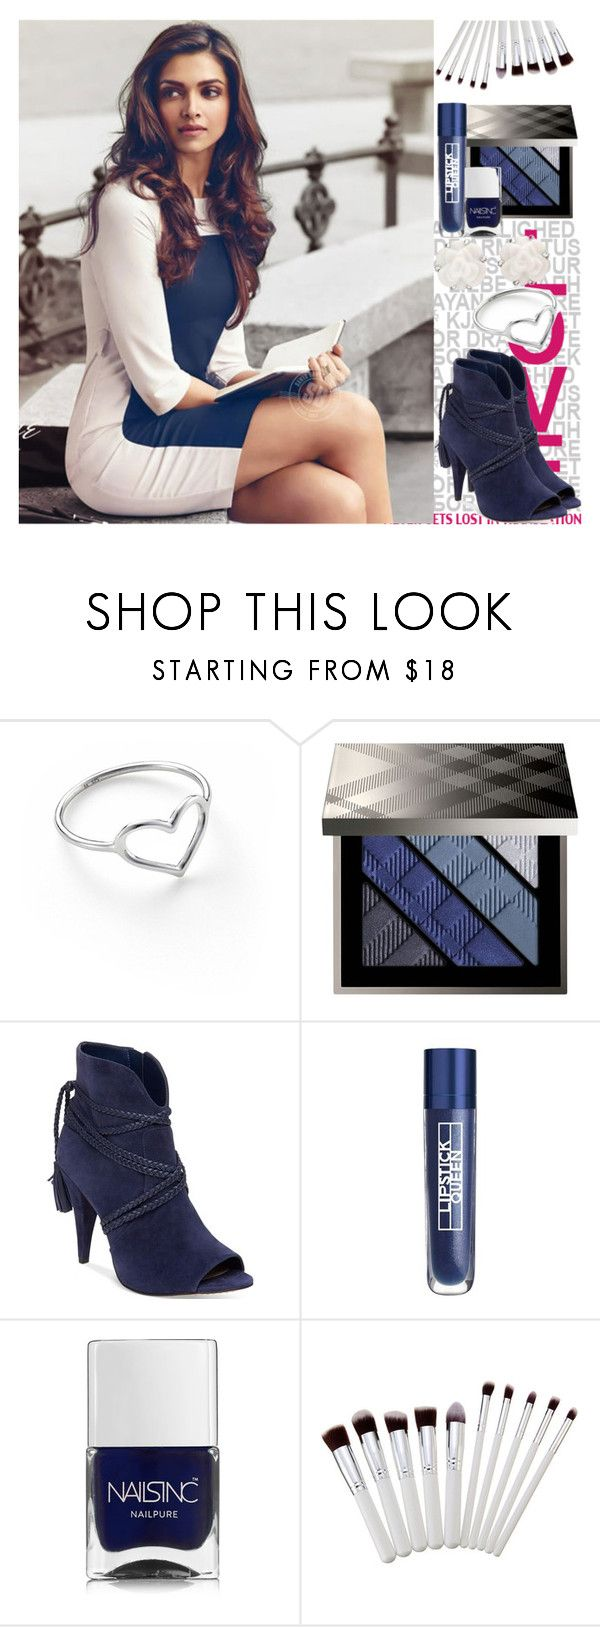 """""""💗Cute DP💗"""" by mmsbeg ❤ liked on Polyvore featuring Jordan Askill, Burberry, Vince Camuto, Lipstick Queen, Nails Inc. and Chanel"""